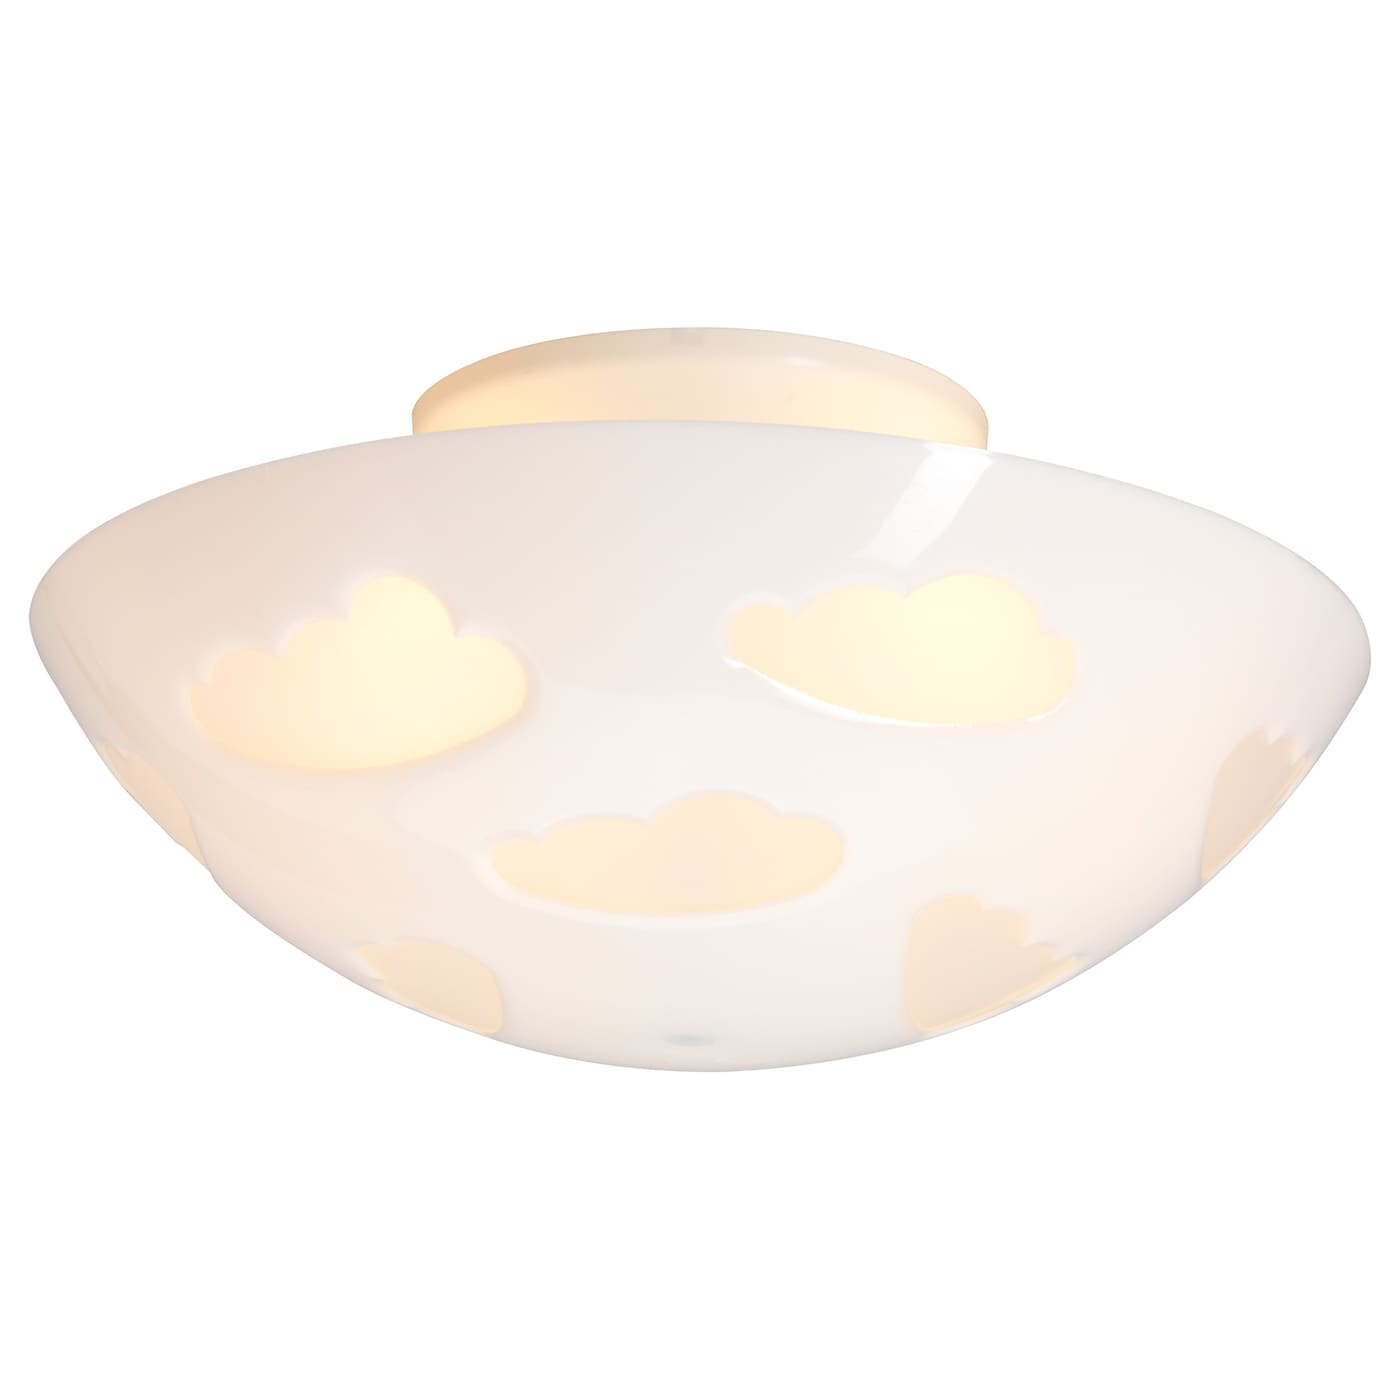 SKOJIG Ceiling Lamp White